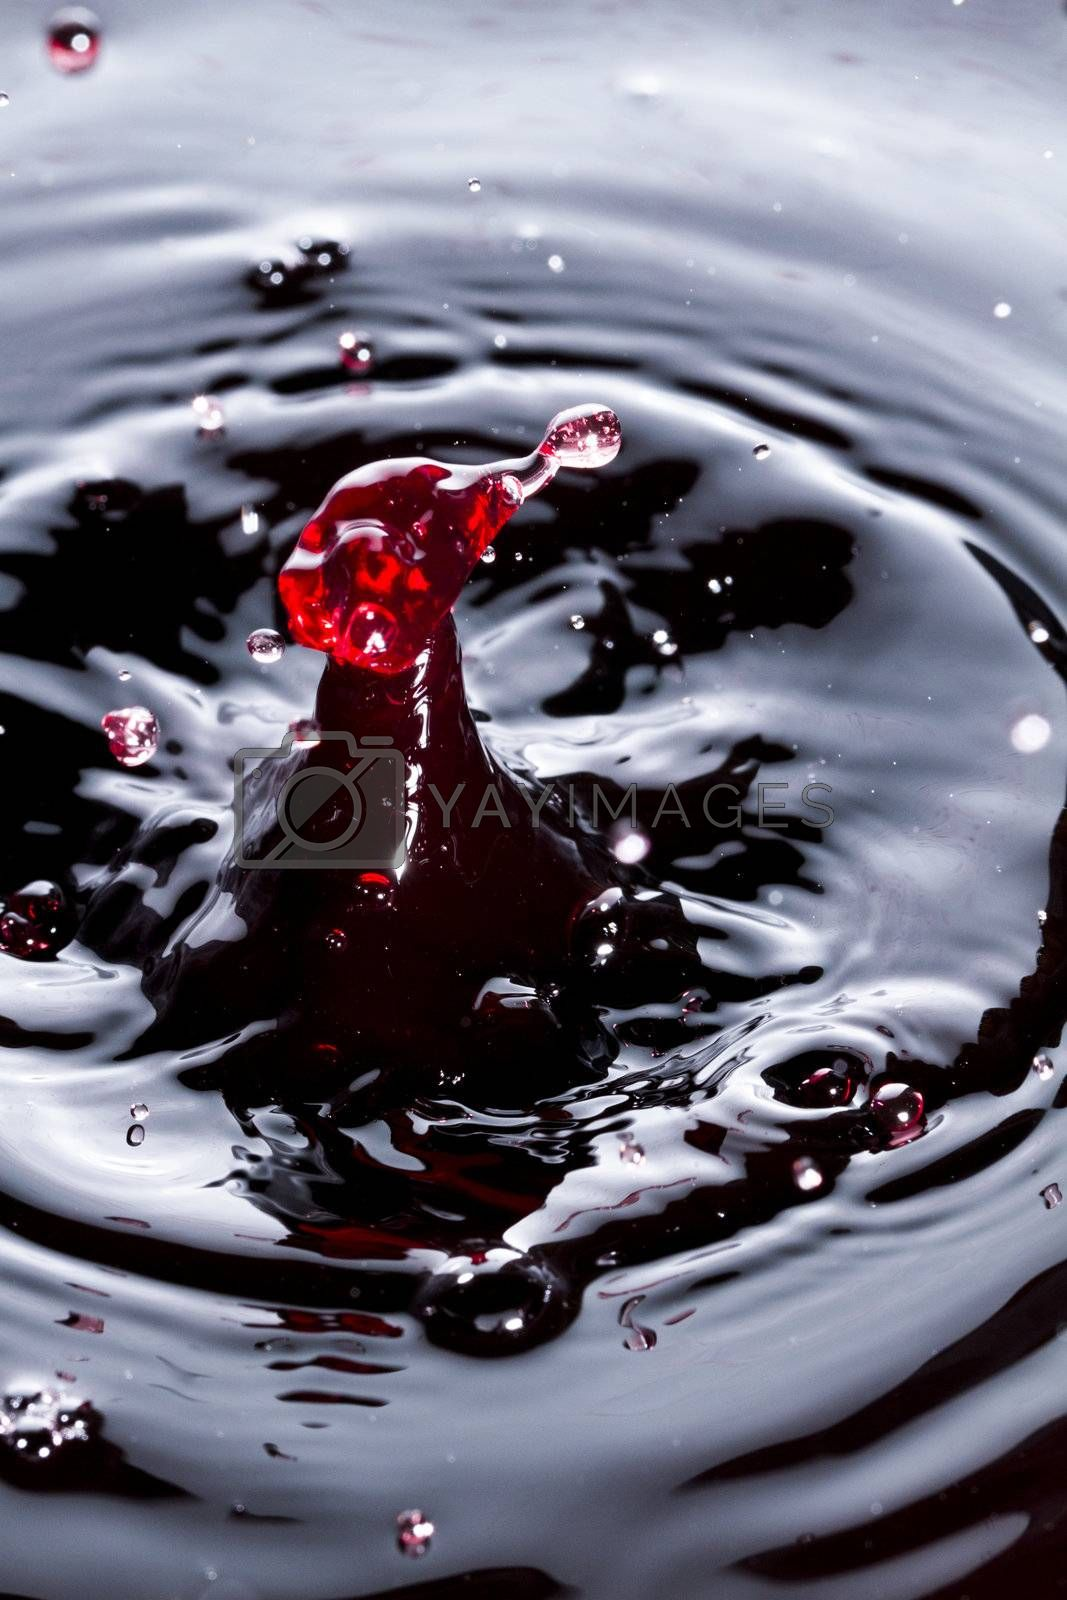 Close view of a droplet of wine hitting a surface of wine.